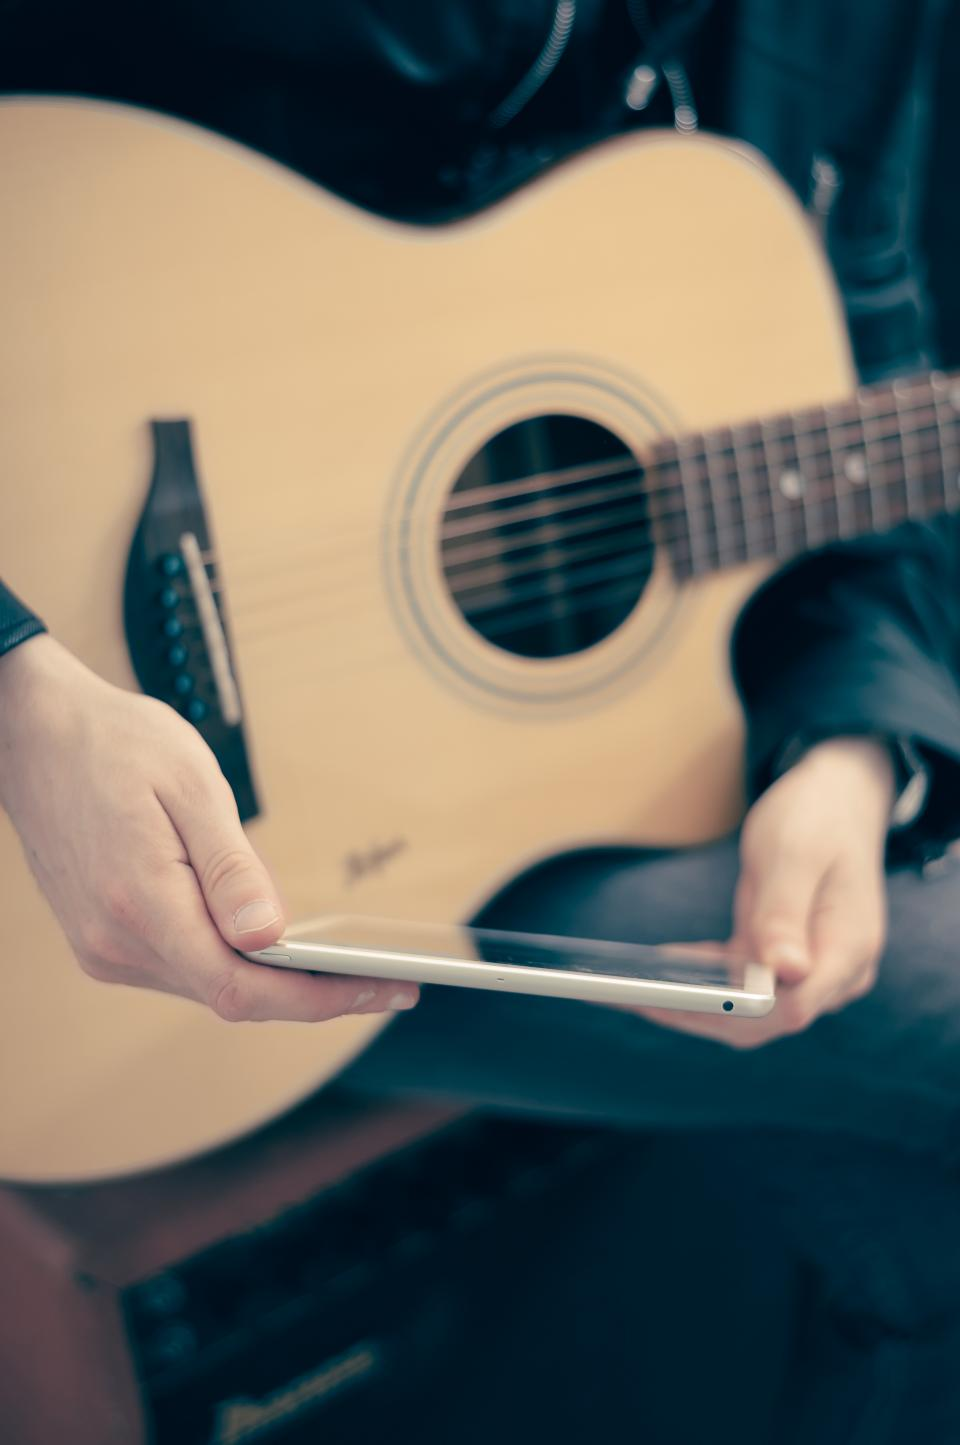 ipad tablet acoustic guitar musician music technology audio